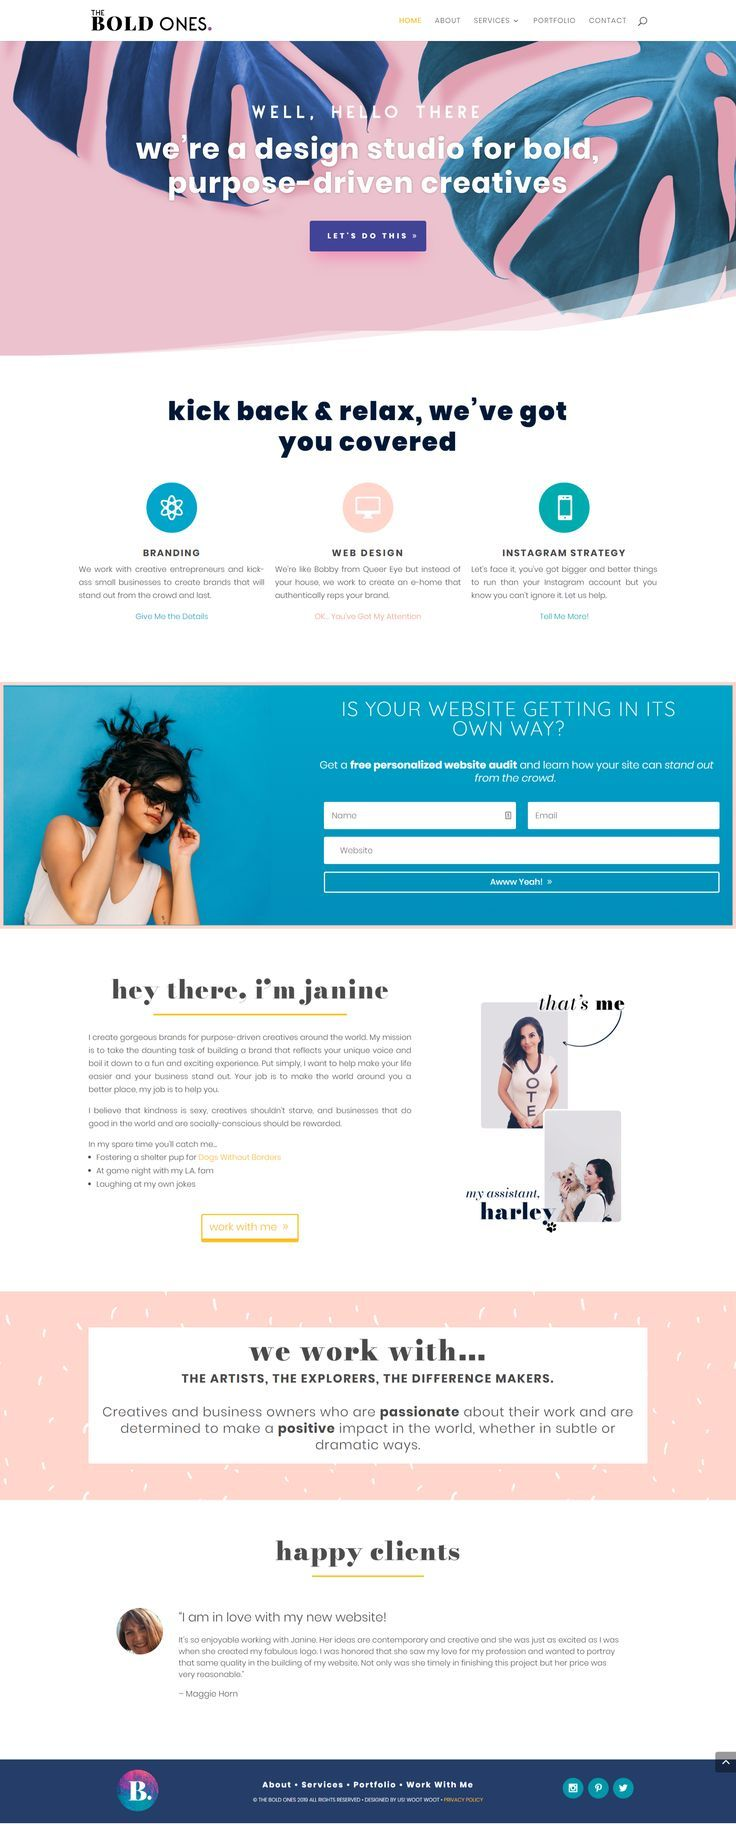 The Bold Ones Branding And Web Design Studio Homepage Layout Design For Wordpress Homepage Layout Design Homepage Design Web Design Studio